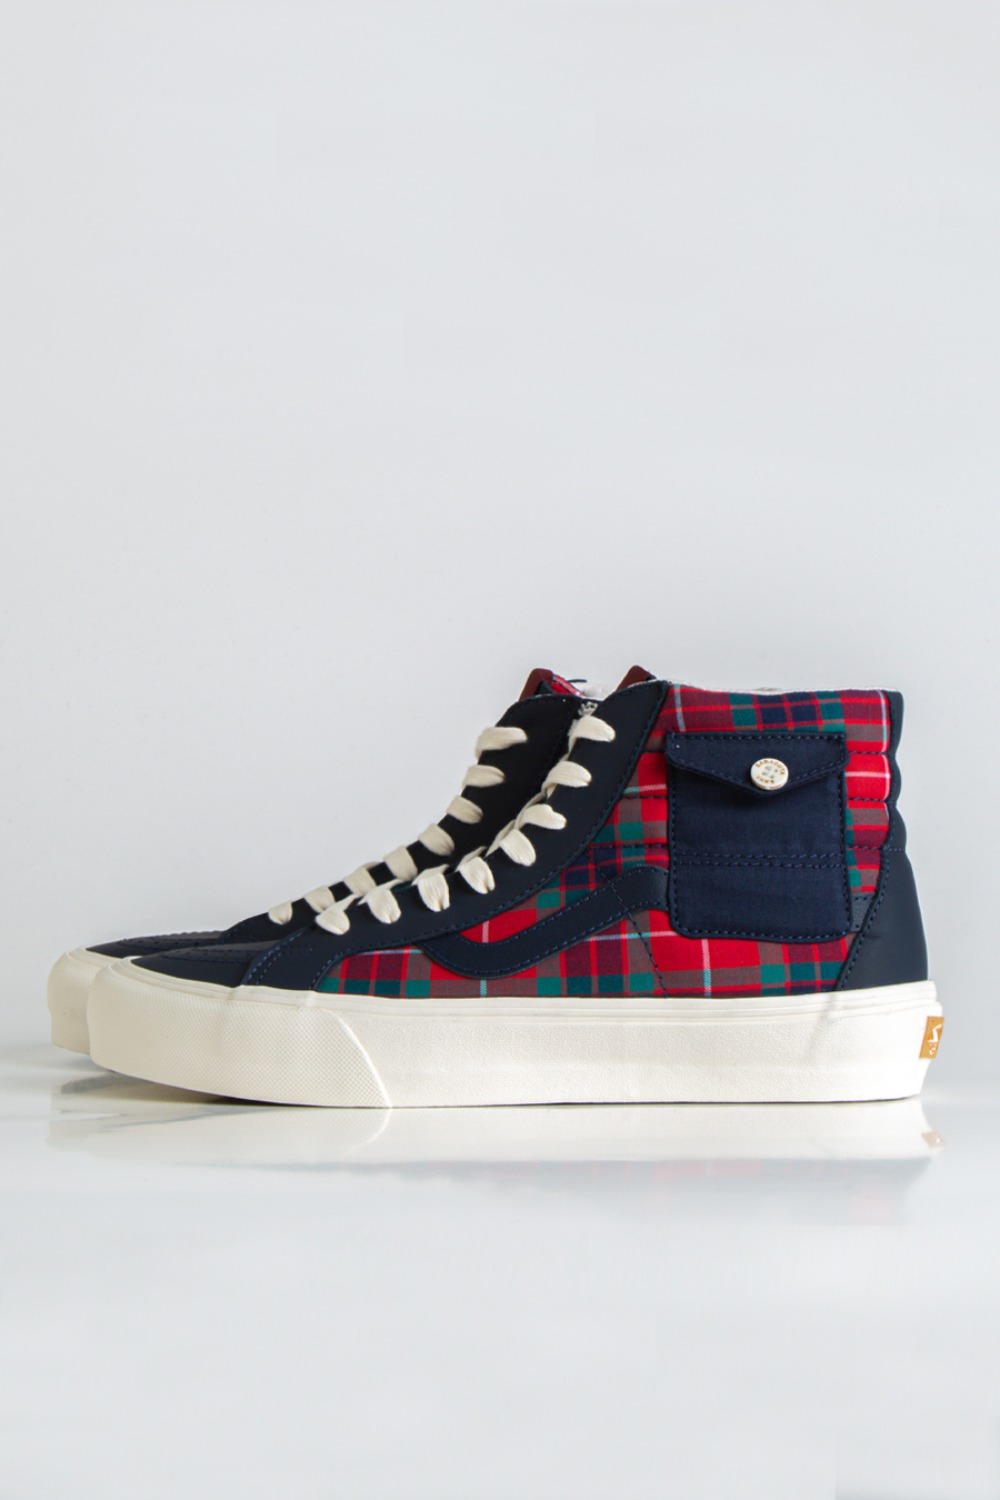 SK8-HI POCKET VLT LX(BARACUTA) DRESS BLUES/TARTAN PLAID/MARSHMALLOW